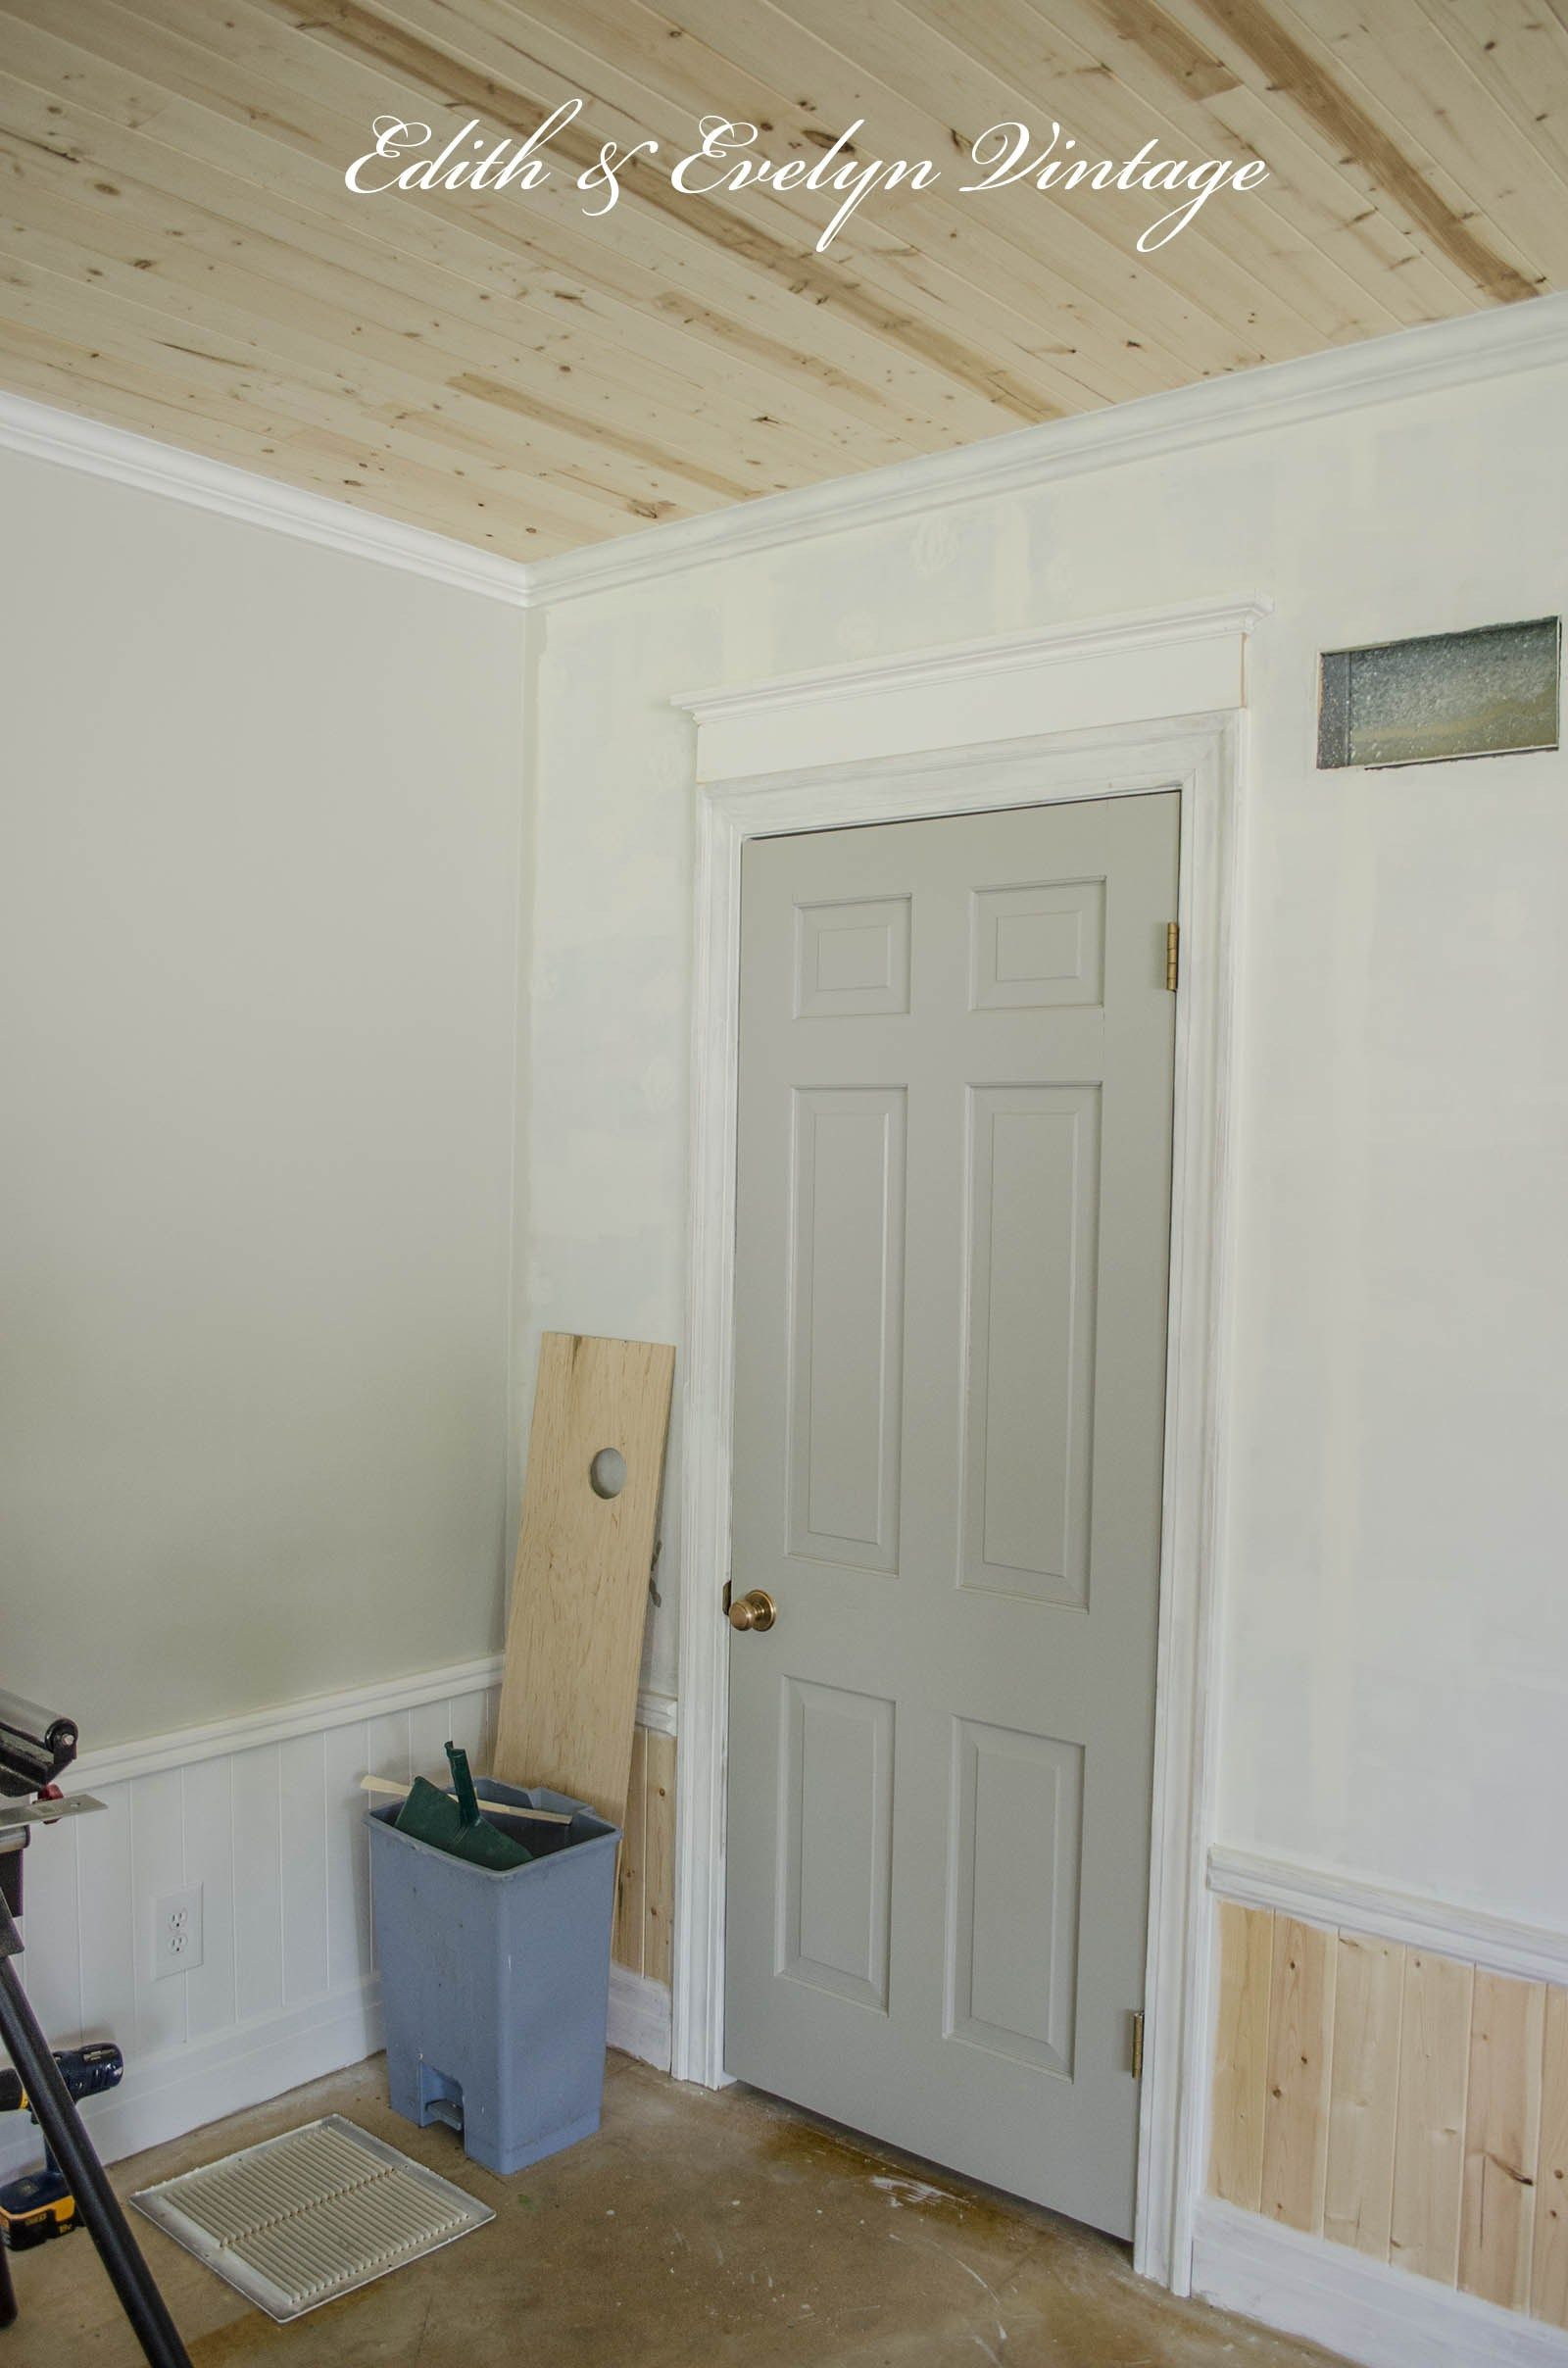 Crown Molding And Building Up The Door Frame From Edith